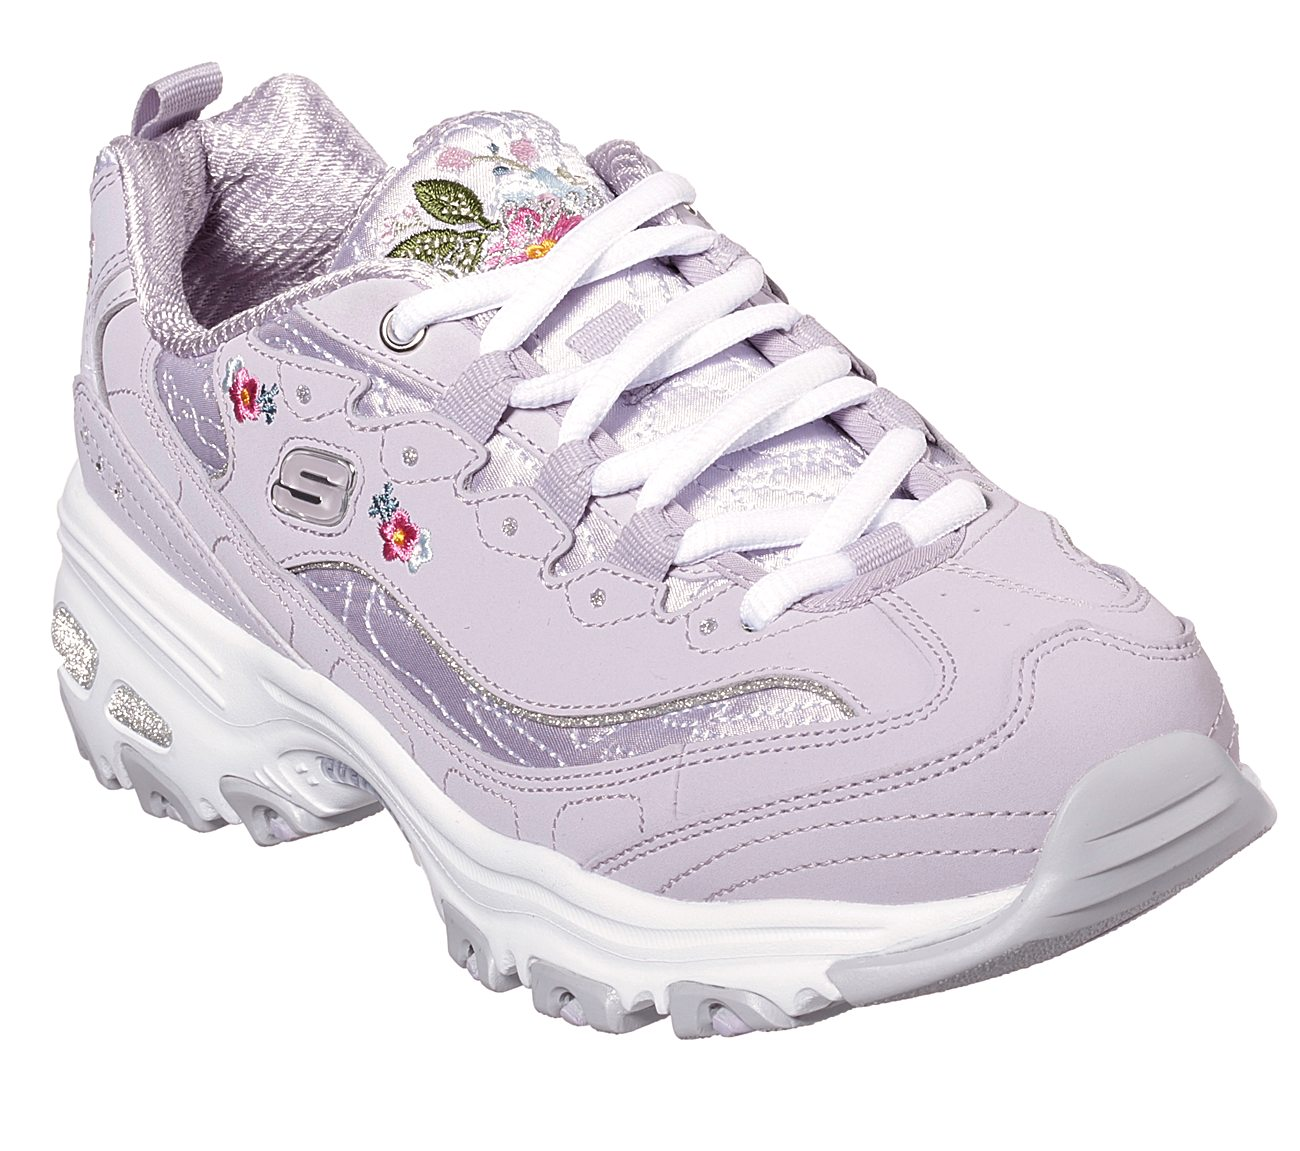 9dedc09be30c Buy SKECHERS D Lites - Bright Blossoms Skechers D Lites Shoes only ...